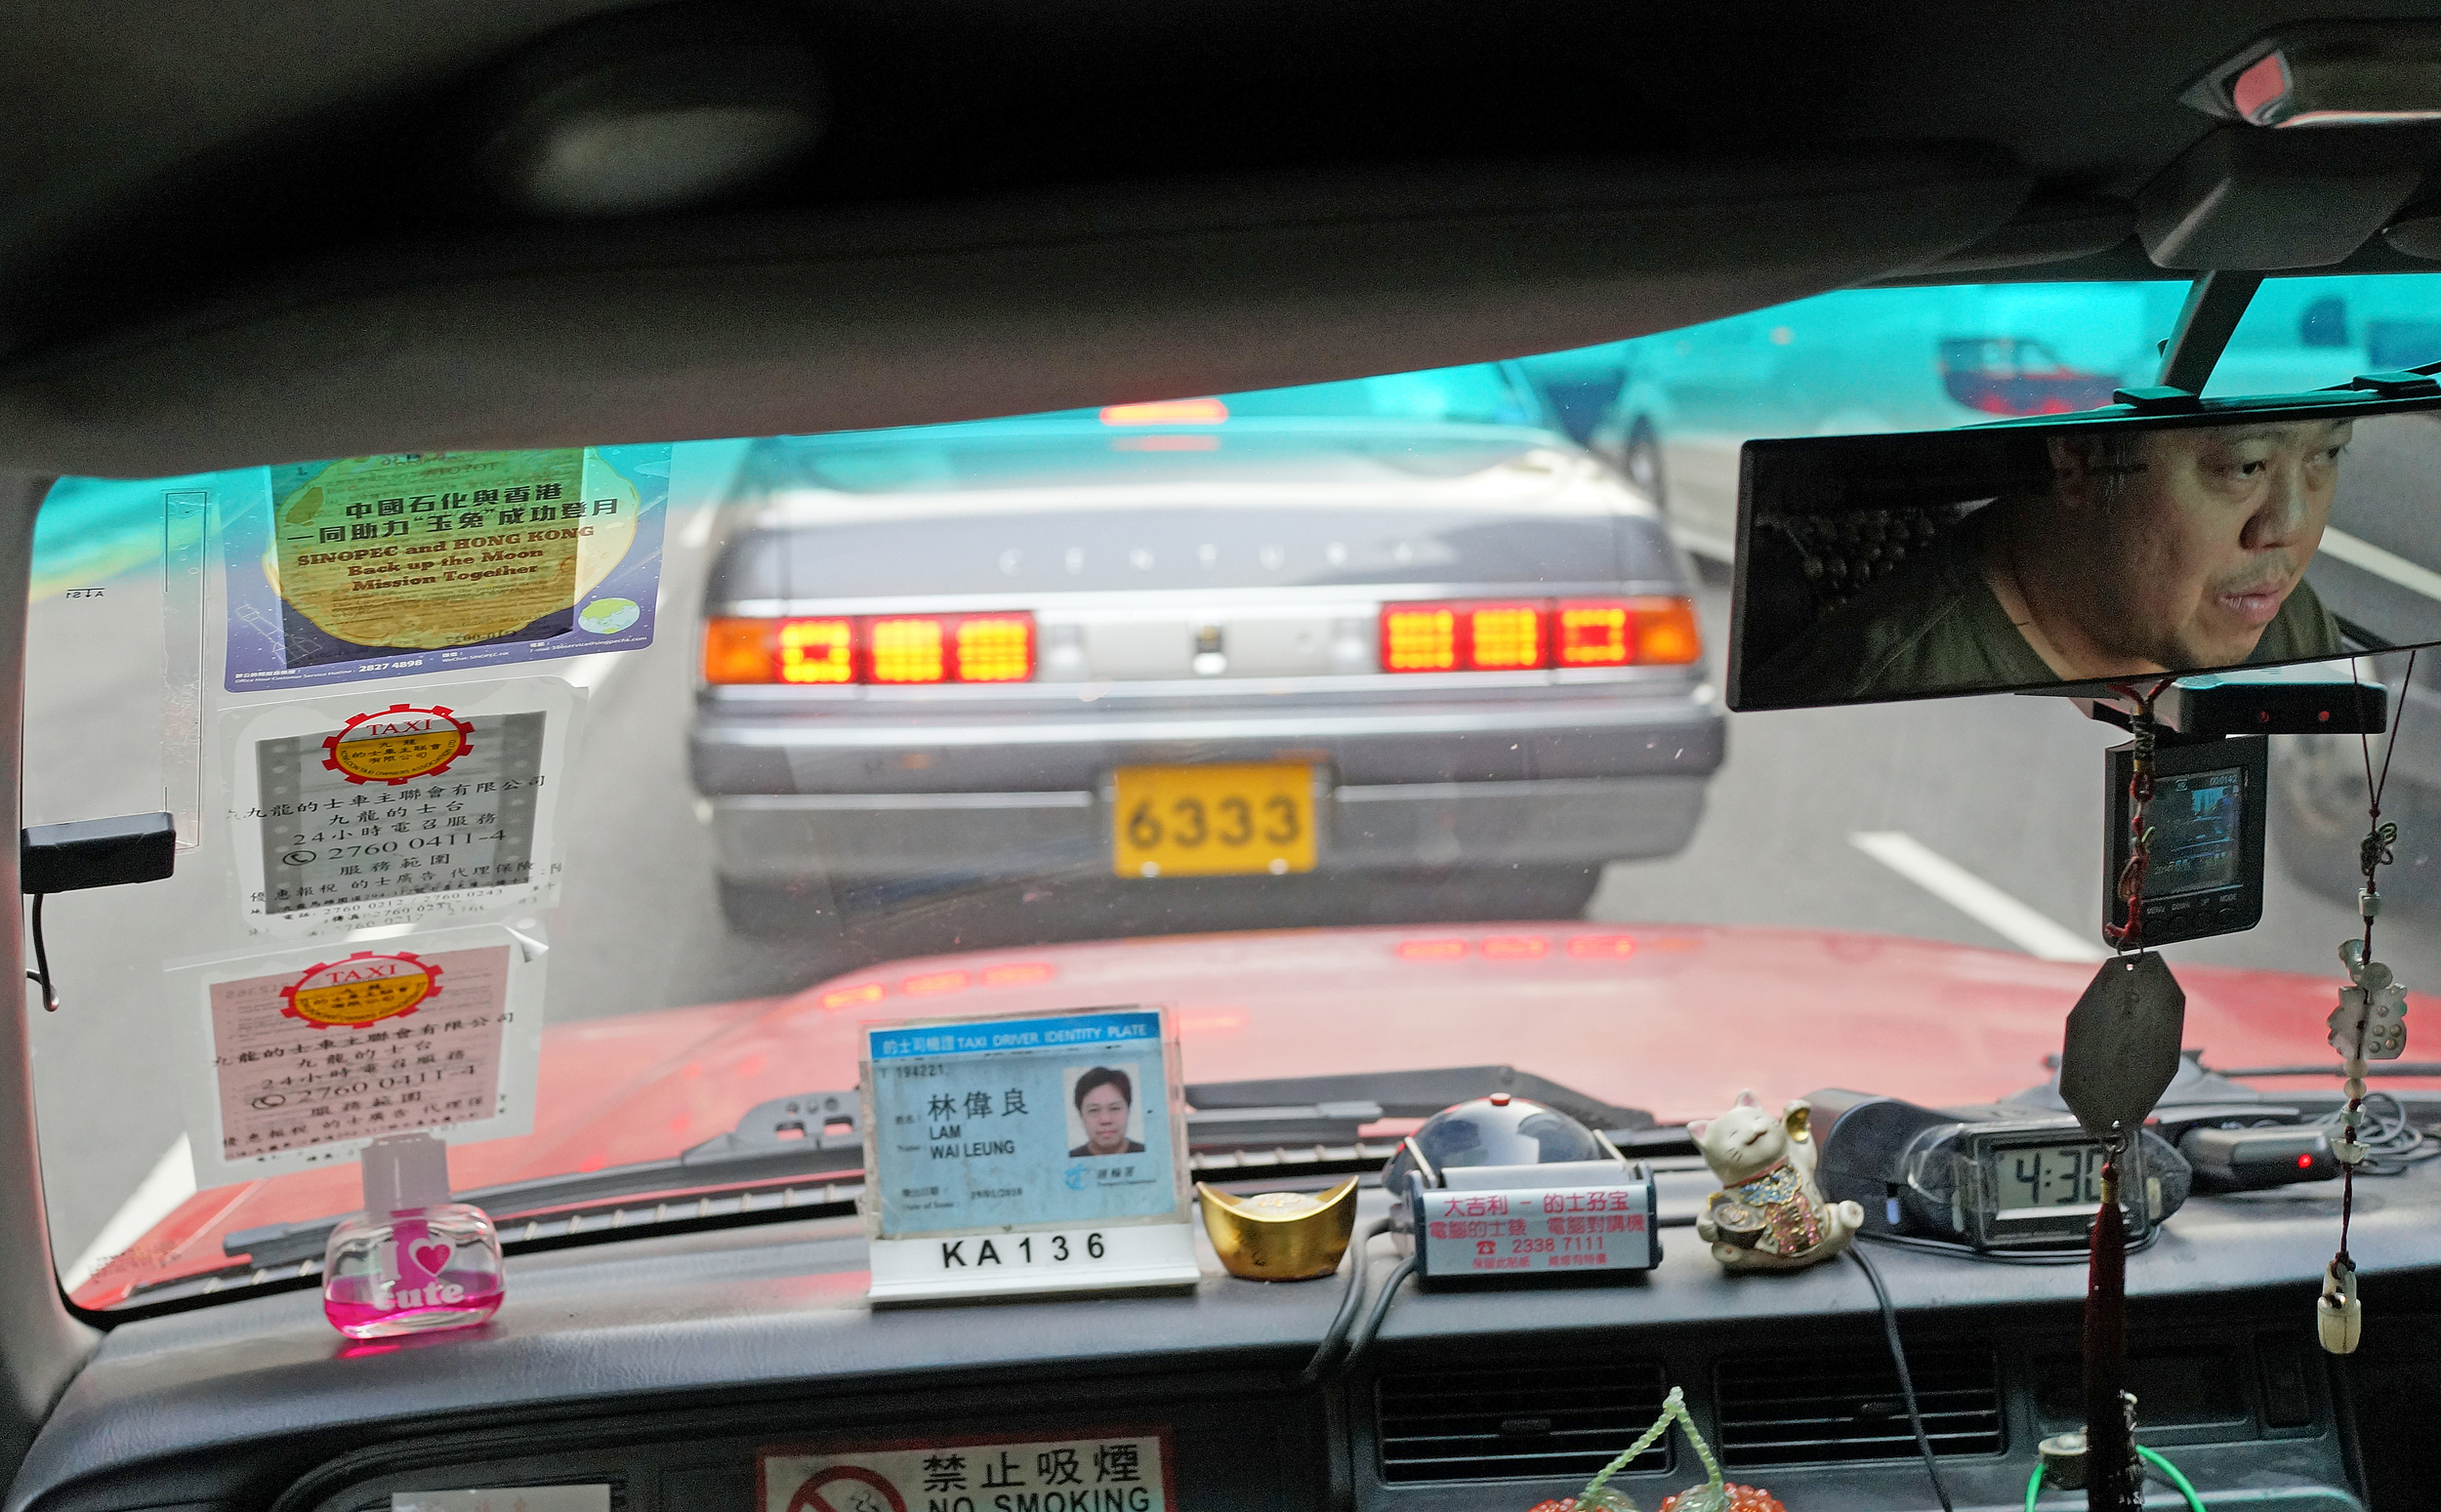 My obsession with car number plates continues - got this one from inside a taxi